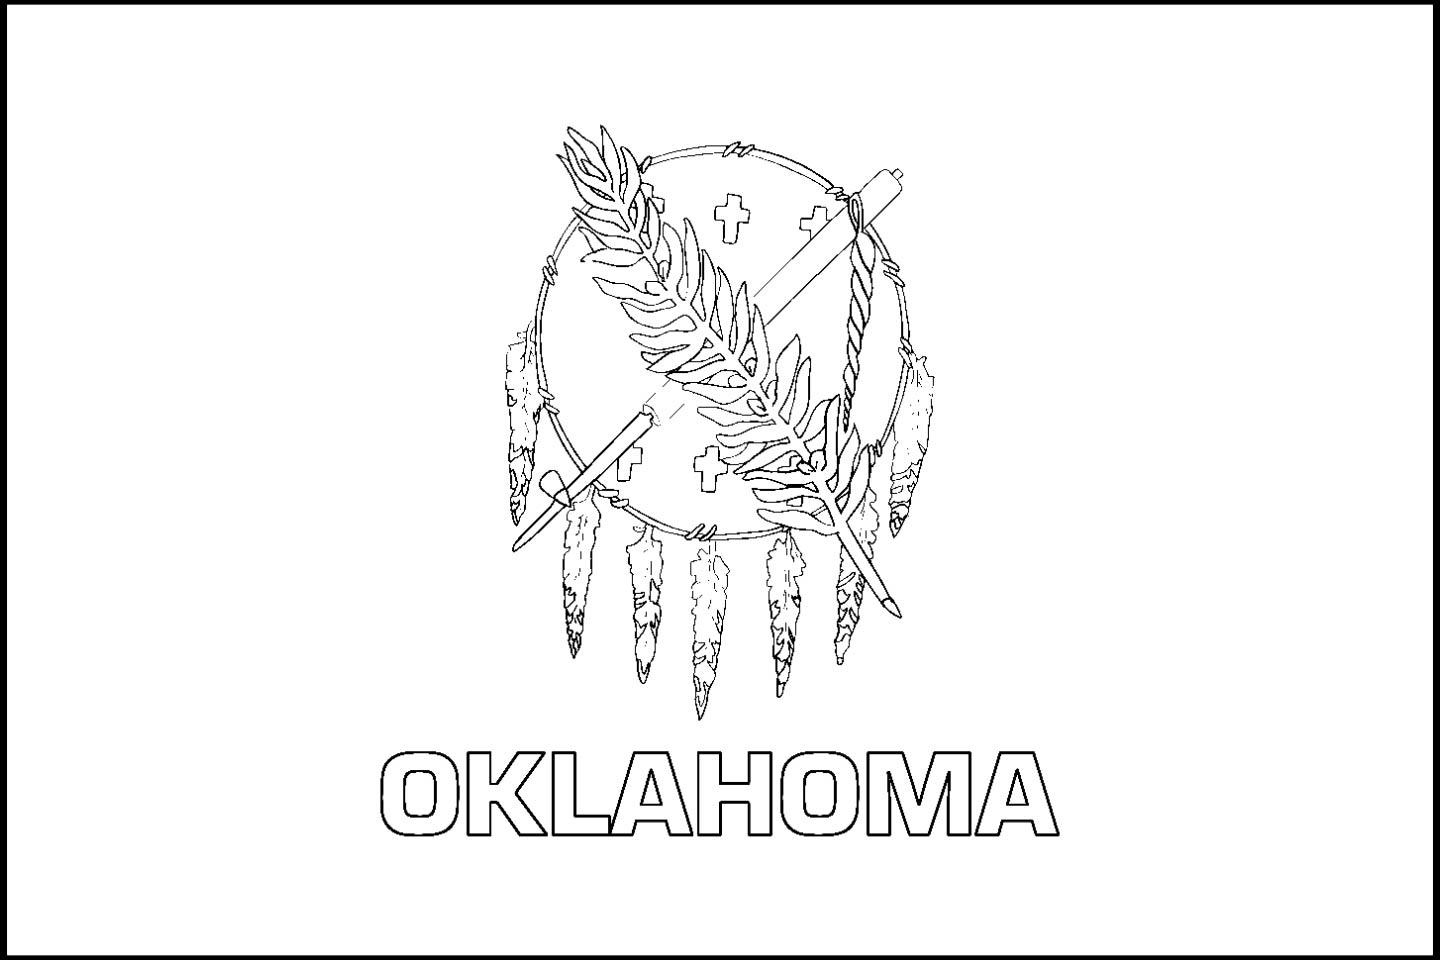 coloring pages oklahoma state flag - photo#9